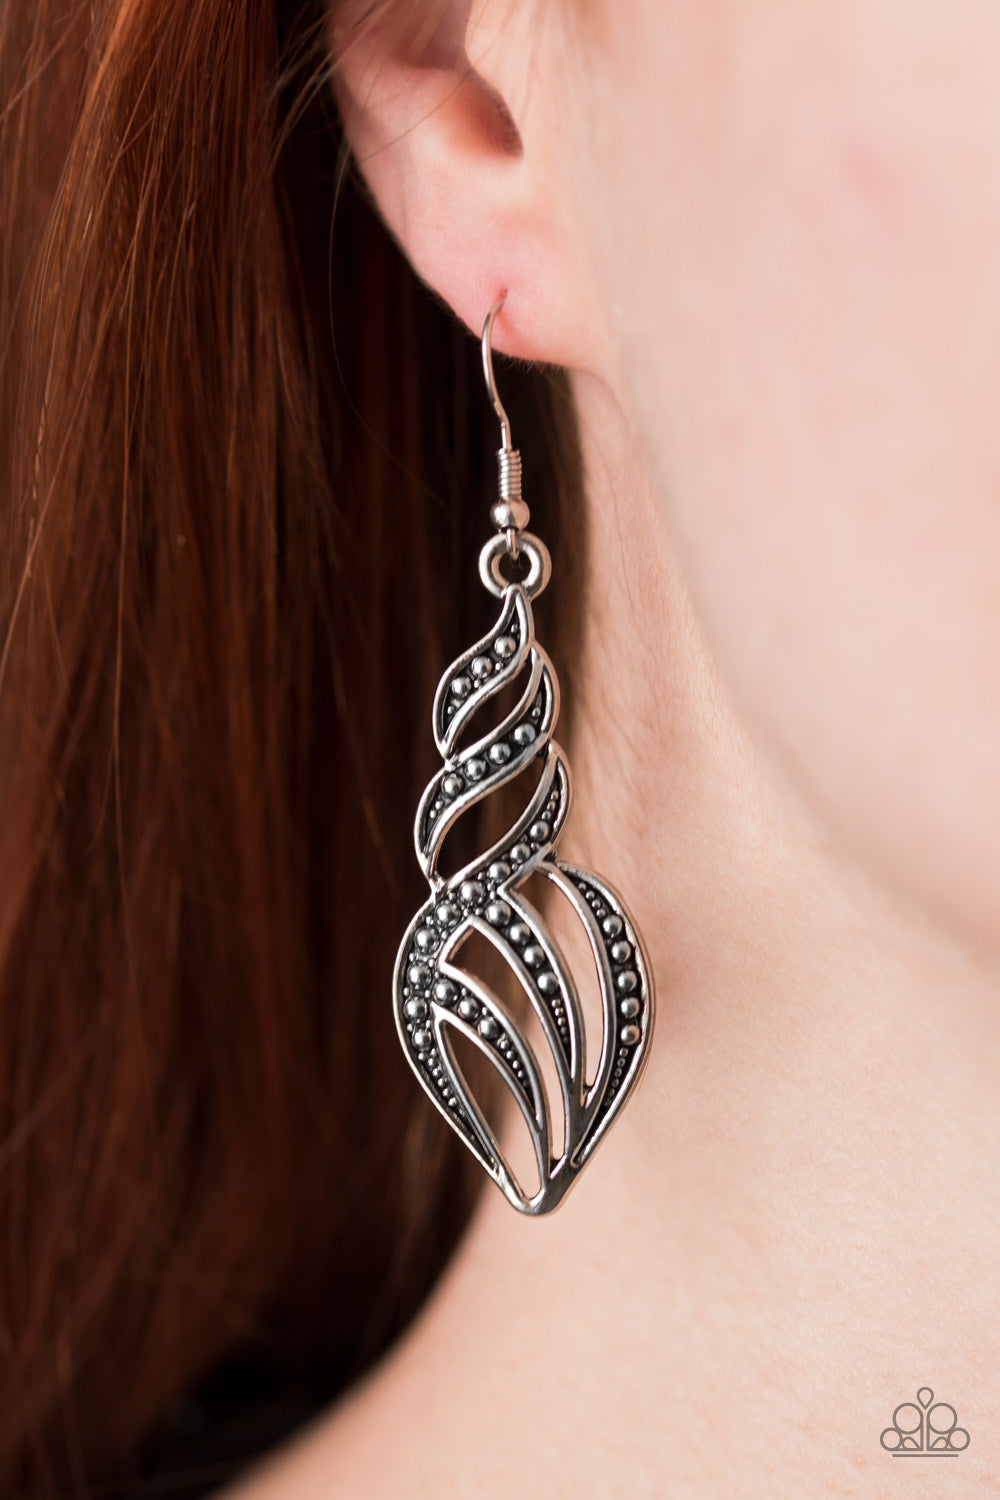 Dotted in glistening studs, antiqued silver ribbons swirl and swoop into a flame-like lure. Earring attaches to a standard fishhook fitting.  Sold as one pair of earrings.  Always nickel and lead free.